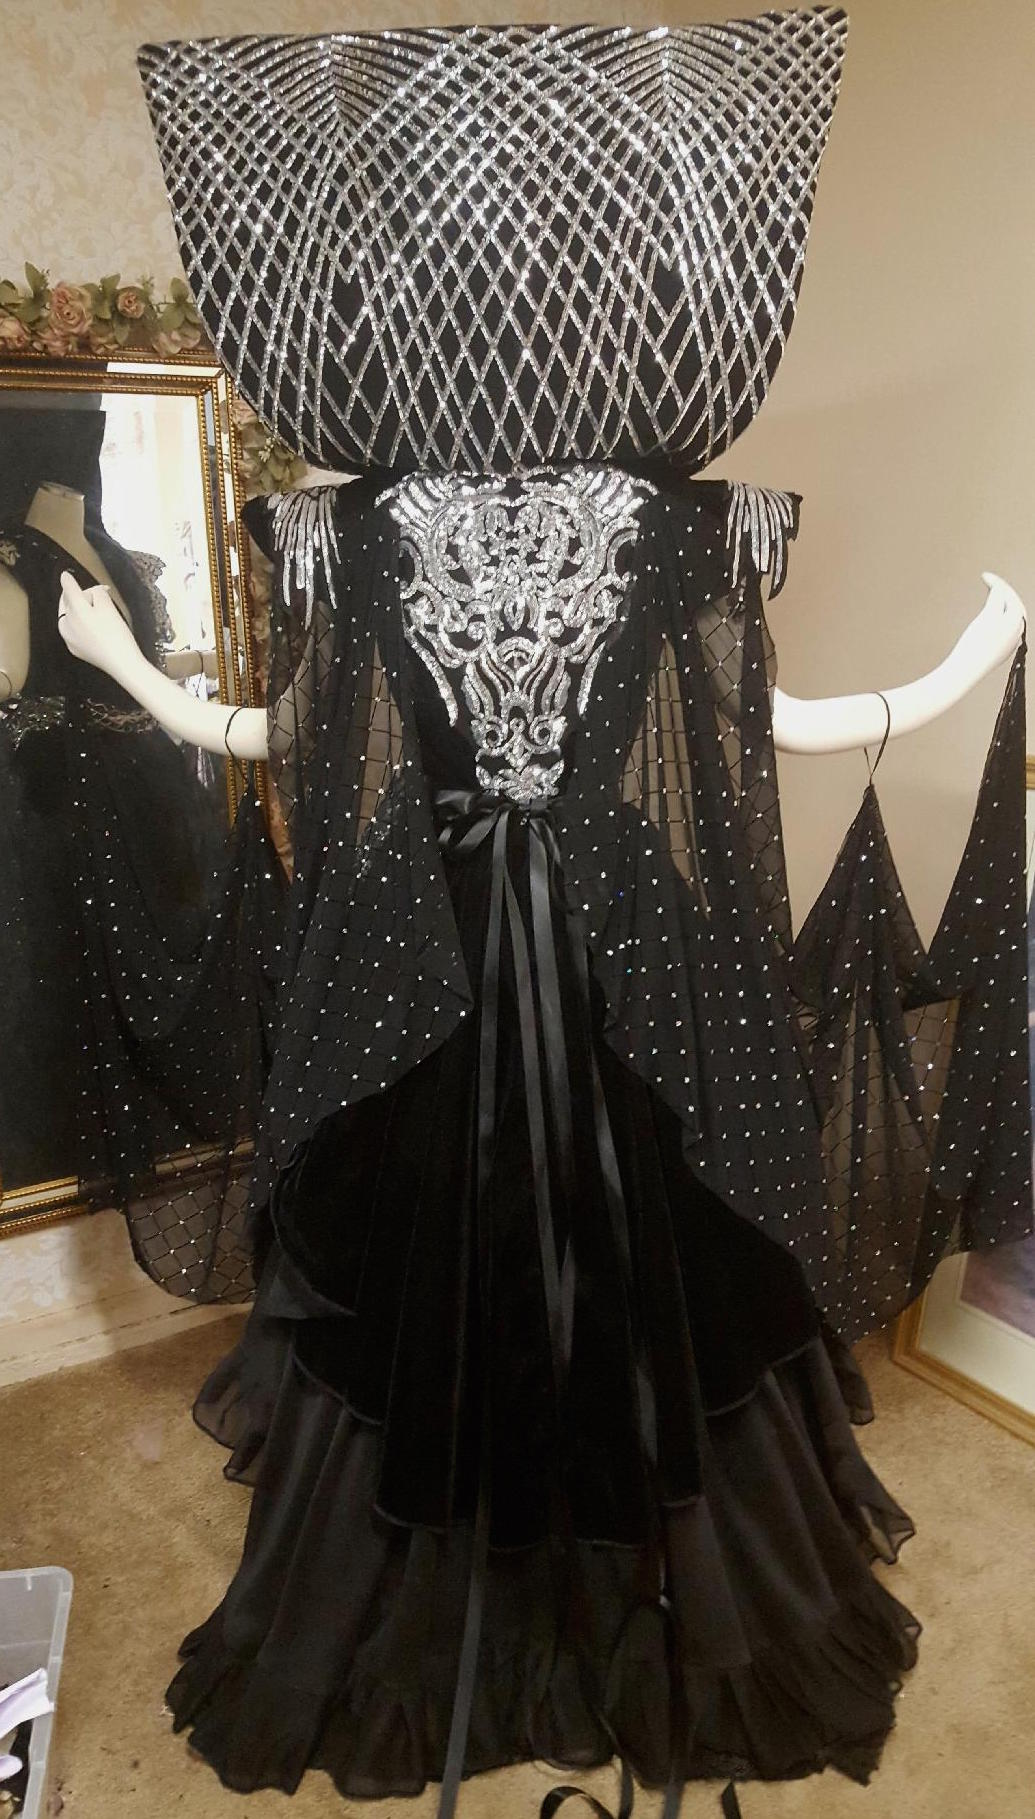 Dark Lily Fantasy Gown from the movie Legend